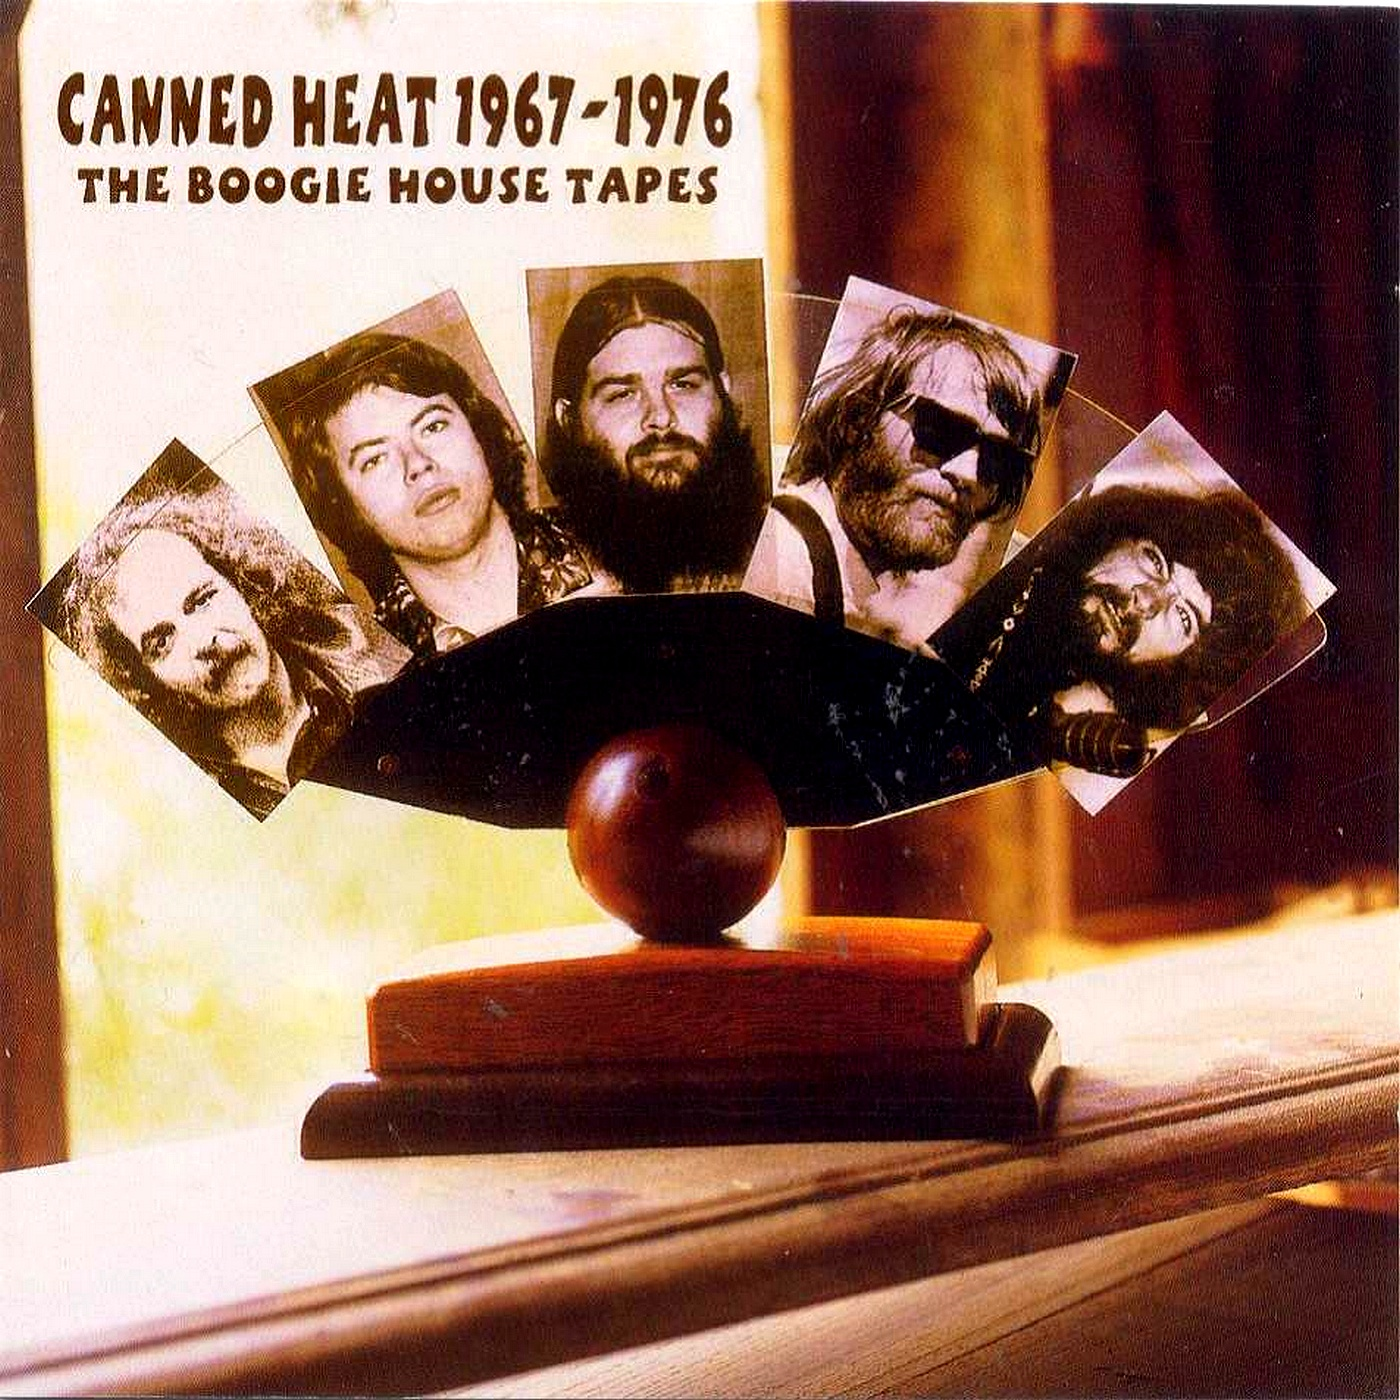 Canned Heat - The Boogie House Tapes 1967-1976 (2000)